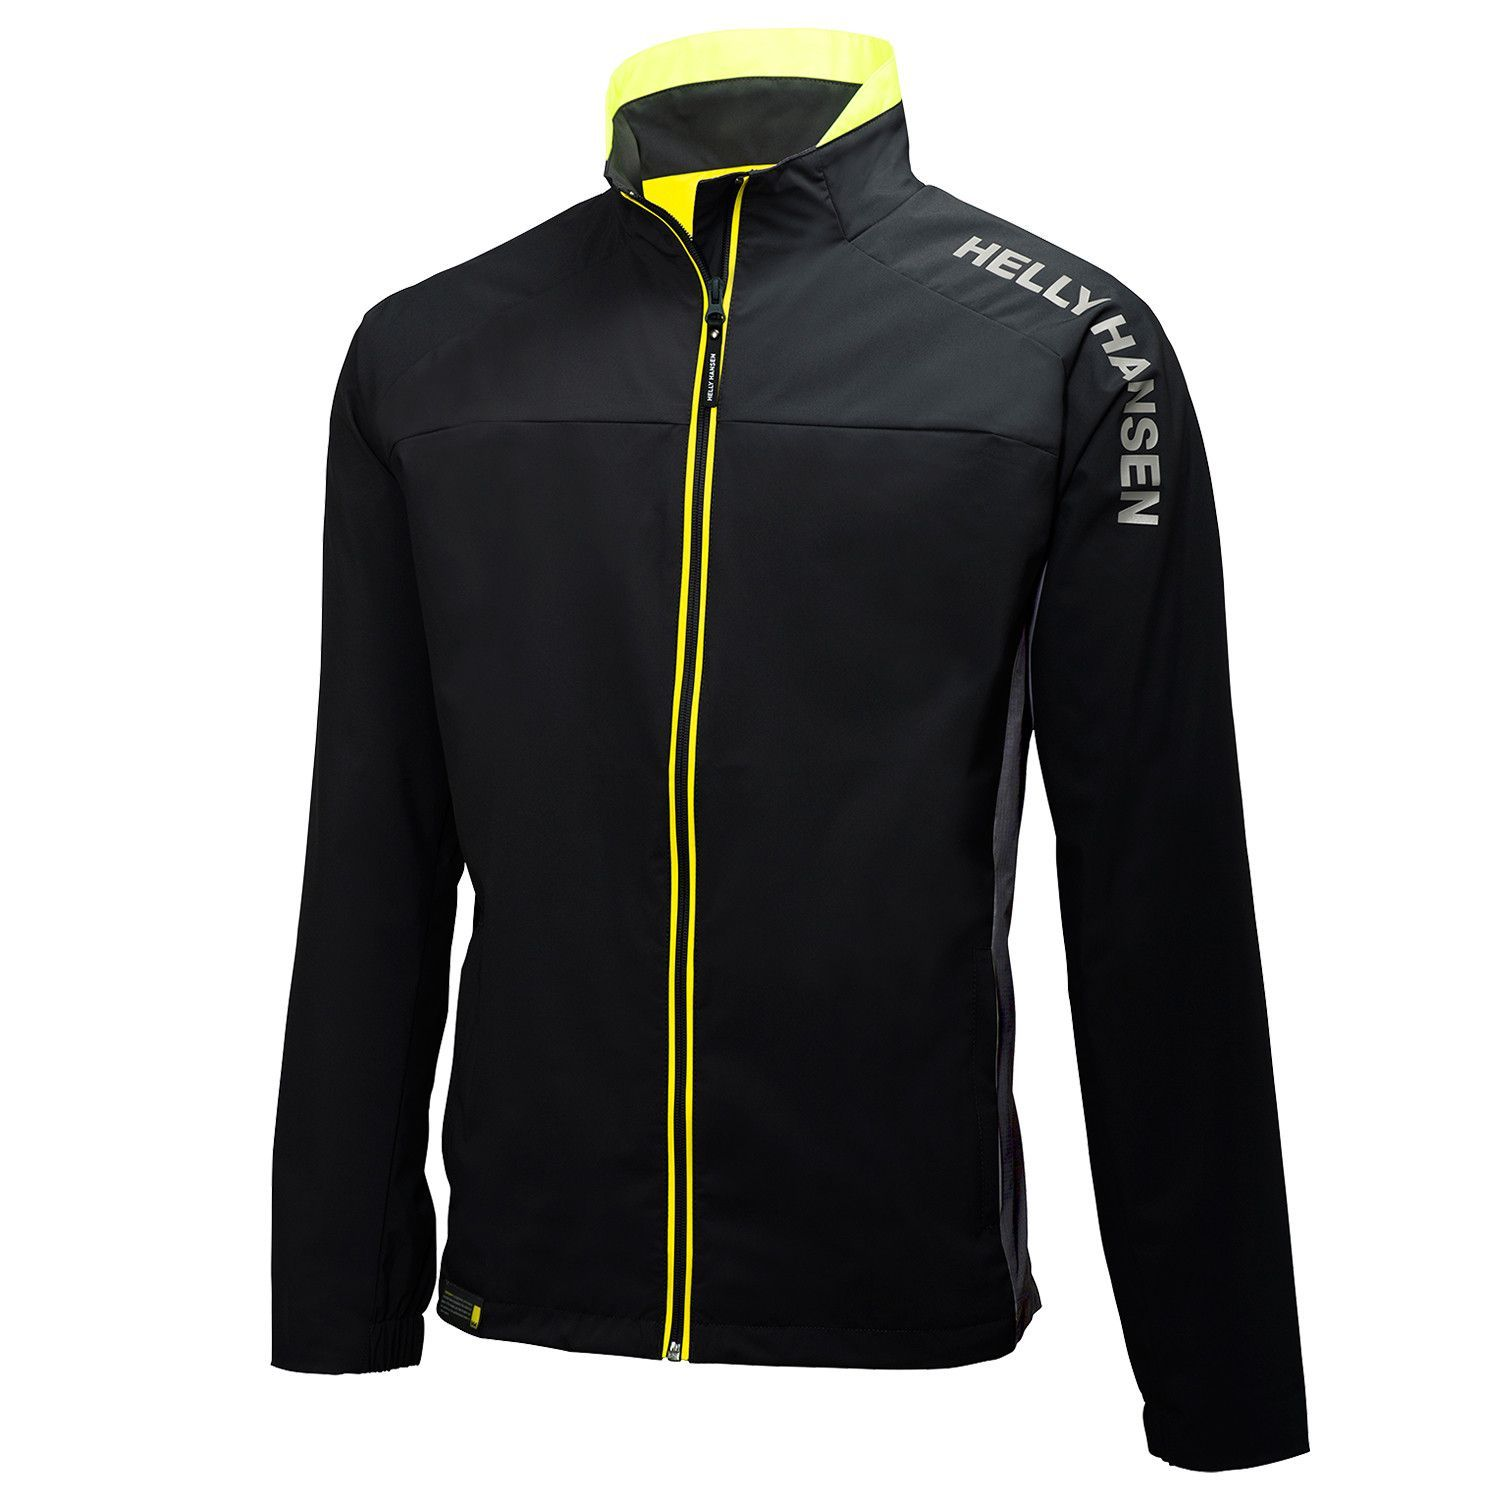 Helly Hansen Helly Power Shore Waterproof Shell Track Jacket - Mens